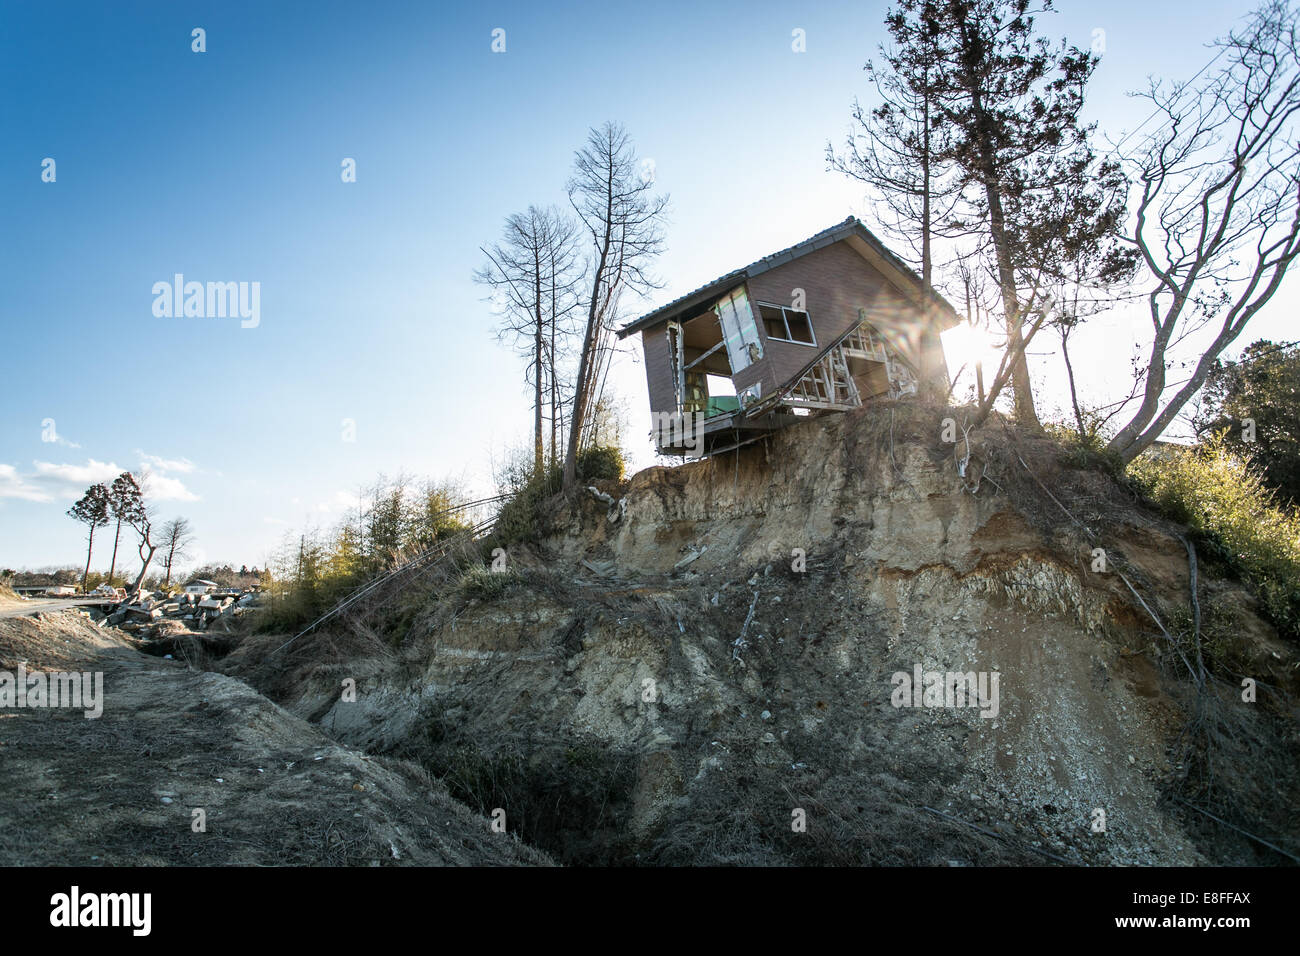 Derelict shack on cliff - Stock Image